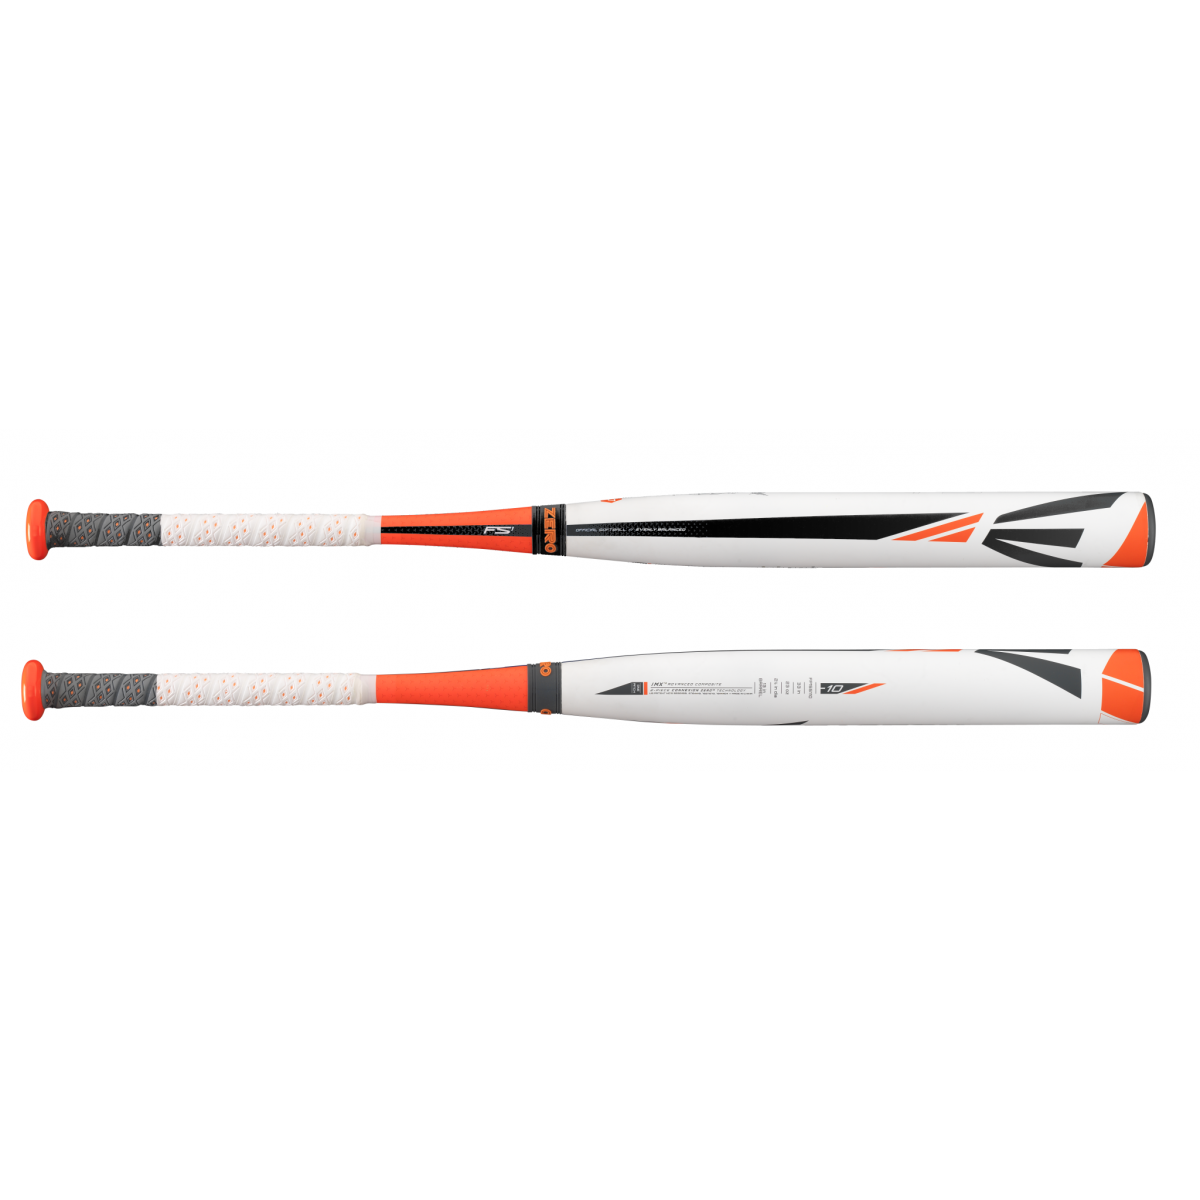 Easton Fast Pitch Softball Bat CXN Zero 2-Piece Composite Speed Design with extra long barrel. TCT Thermo Composite Technology offers a massive sweet spot and unmatched bat speed. All new CXN ZERO 2-piece Conation technology engineered for zero vibration and ultimate performance.